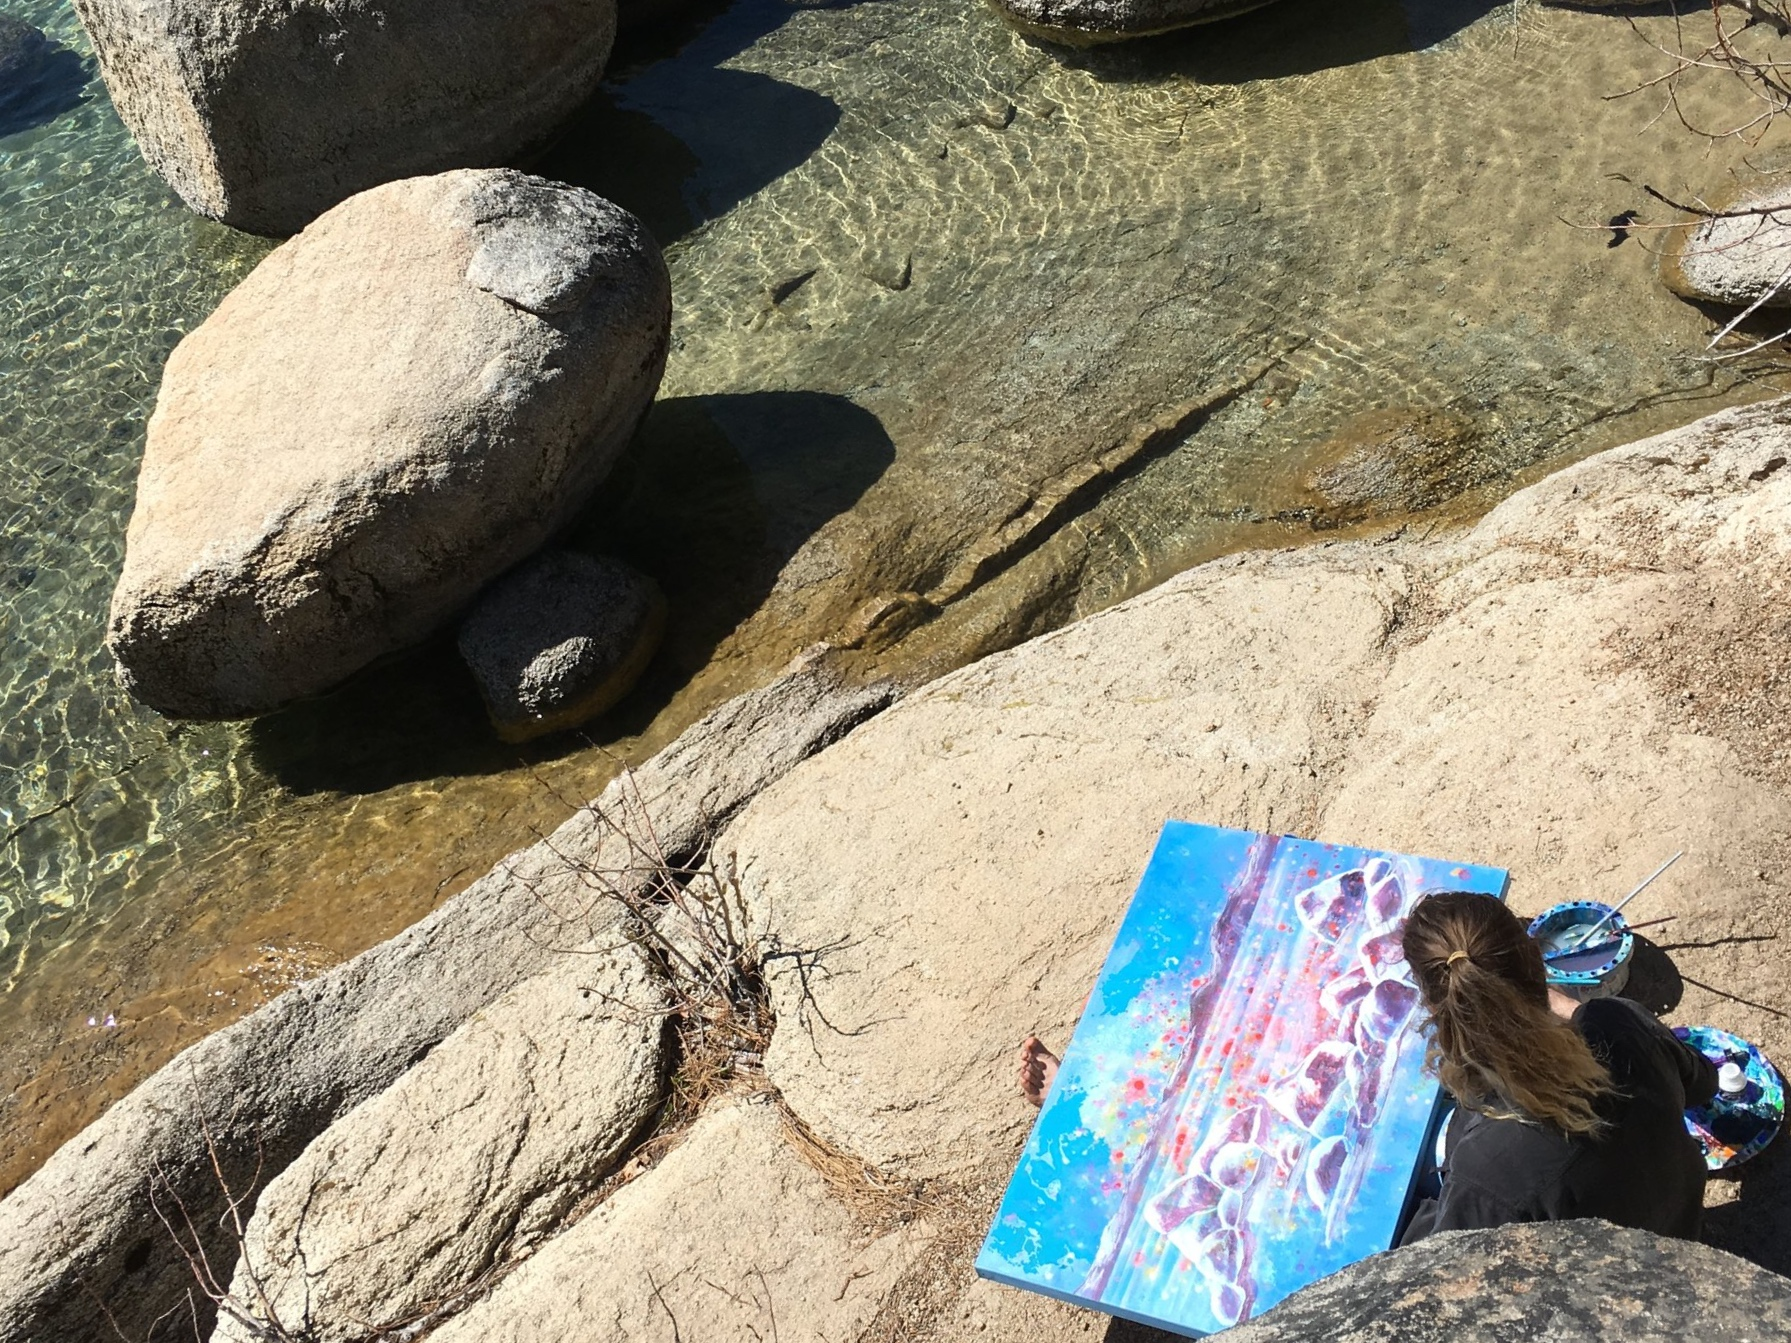 Art of Lake Tahoe - Paintings by Kristen Pobatschnig